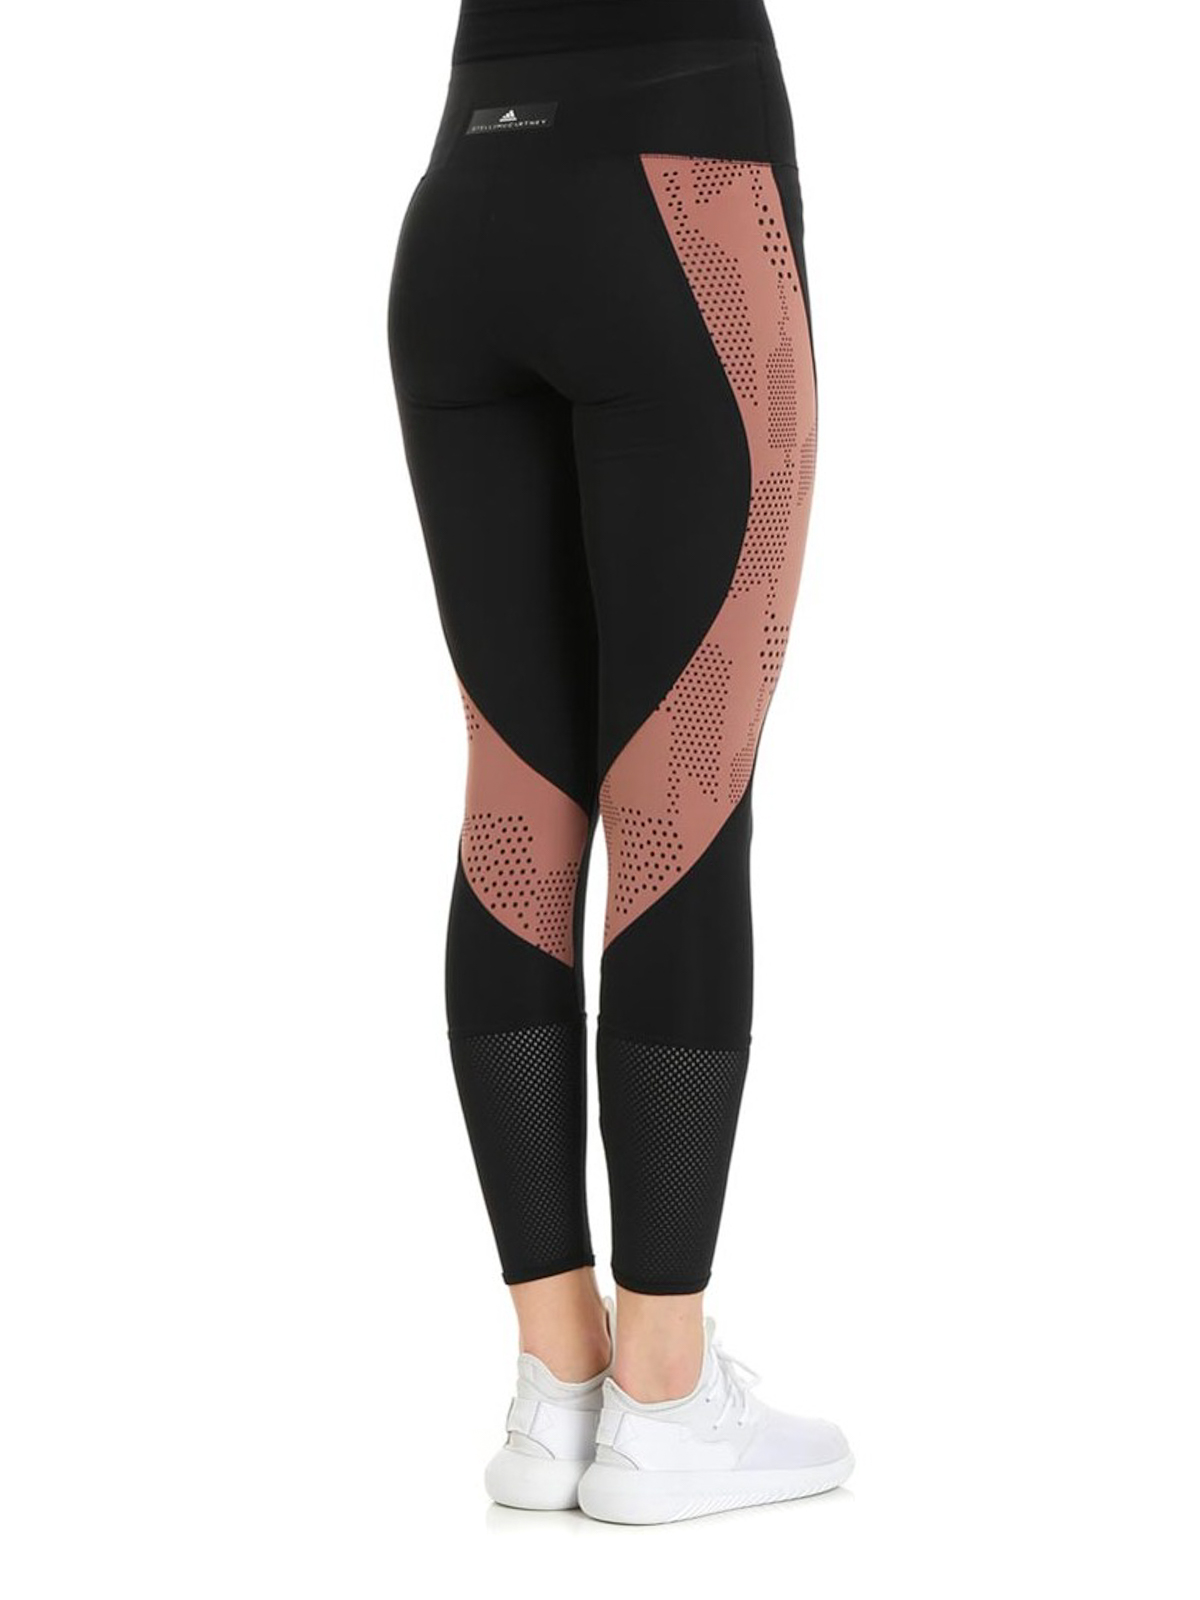 19a9d6370f9960 iKRIX ADIDAS BY STELLA MCCARTNEY: leggings - Recycled two-tone training  tights